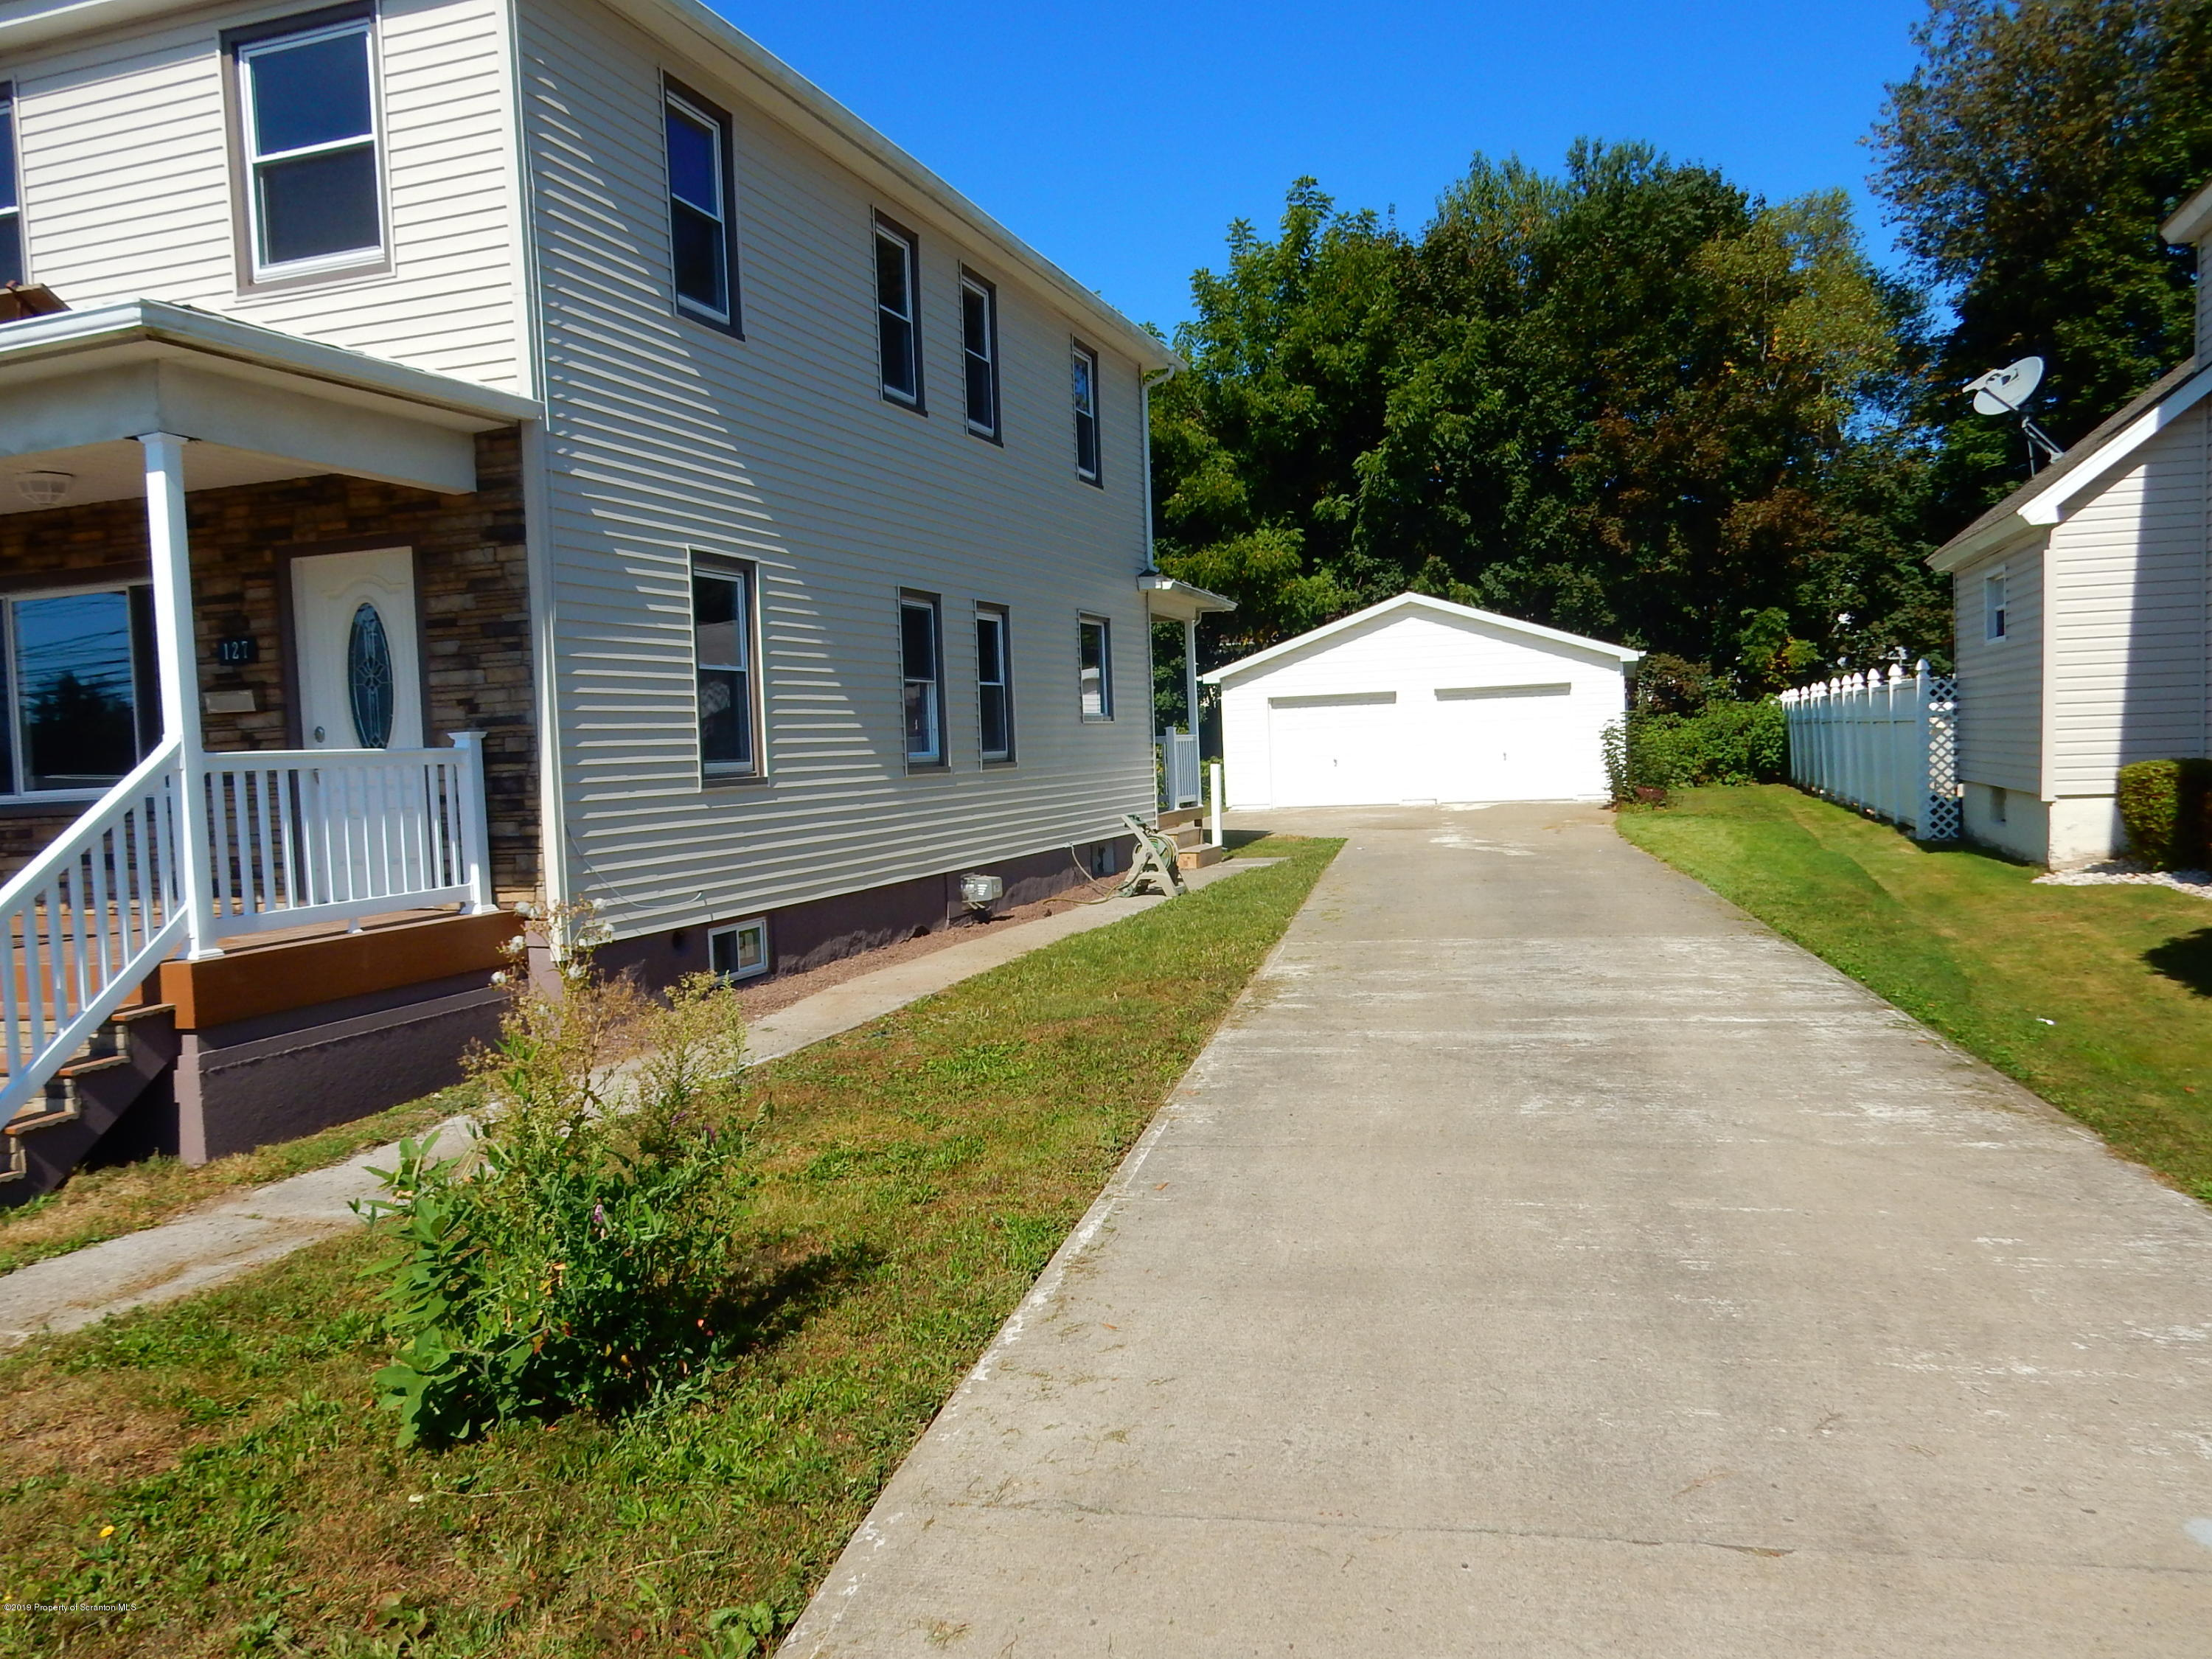 127 Electric St, Peckville, Pennsylvania 18452, 3 Bedrooms Bedrooms, 5 Rooms Rooms,2 BathroomsBathrooms,Single Family,For Sale,Electric,19-4542